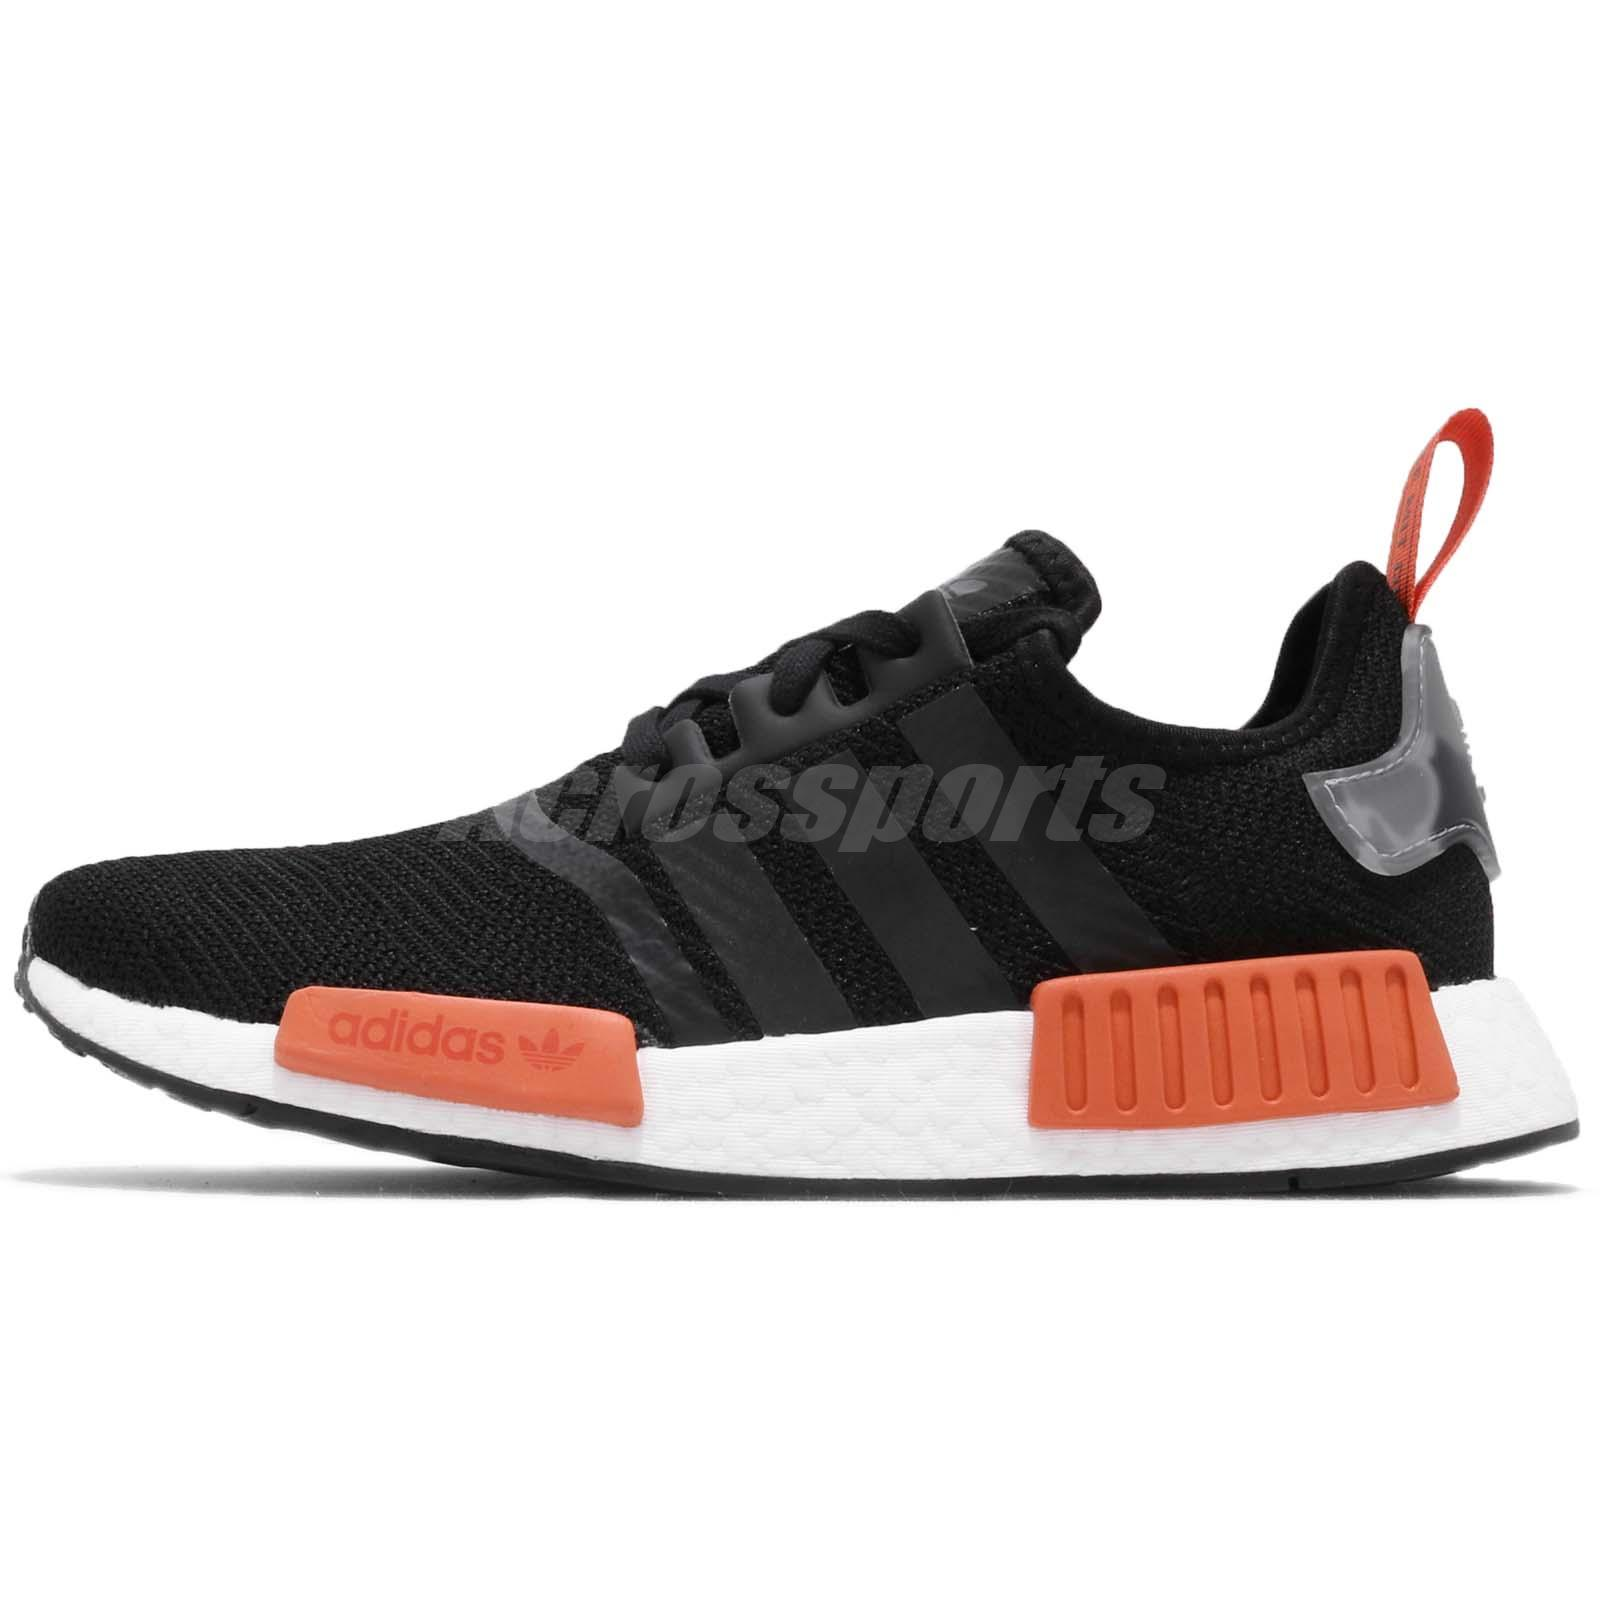 de7557b27 adidas Originals NMD R1 Boost Black Raw Amber Men Running Shoes Sneakers  AQ0882